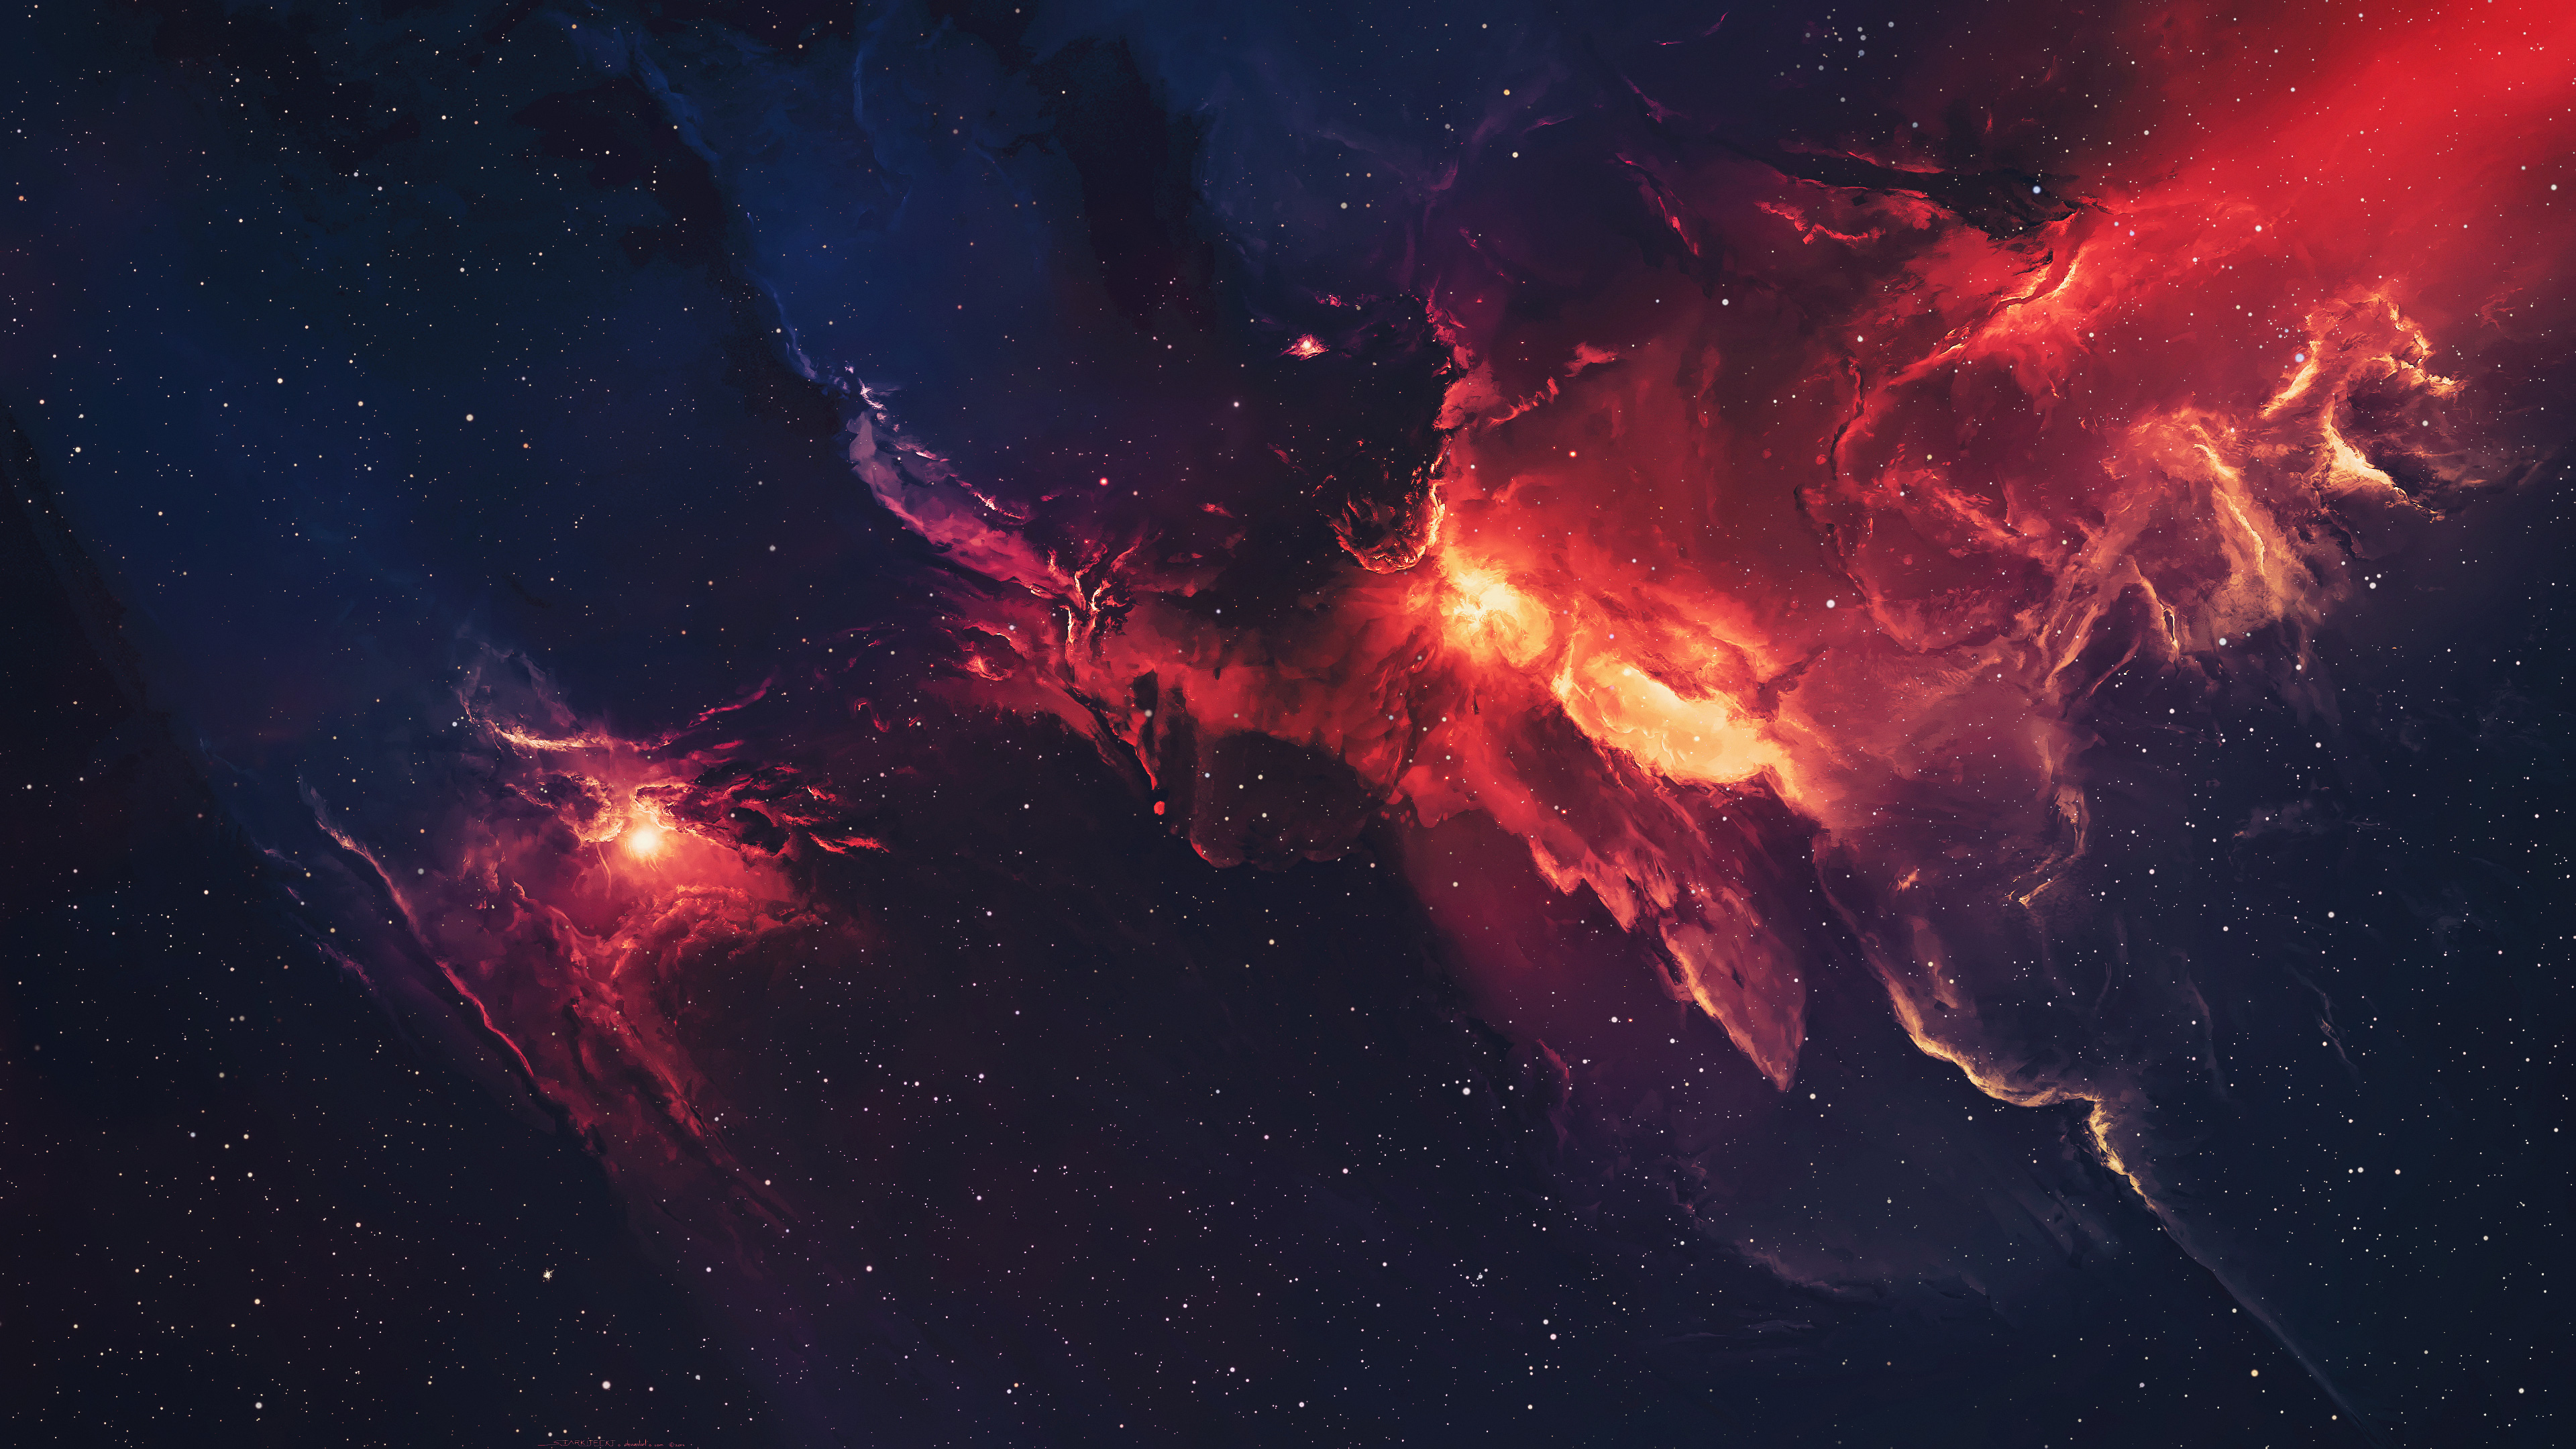 Space Stars Universe Nebula Wallpaper 4k Ultra Hd Id3337